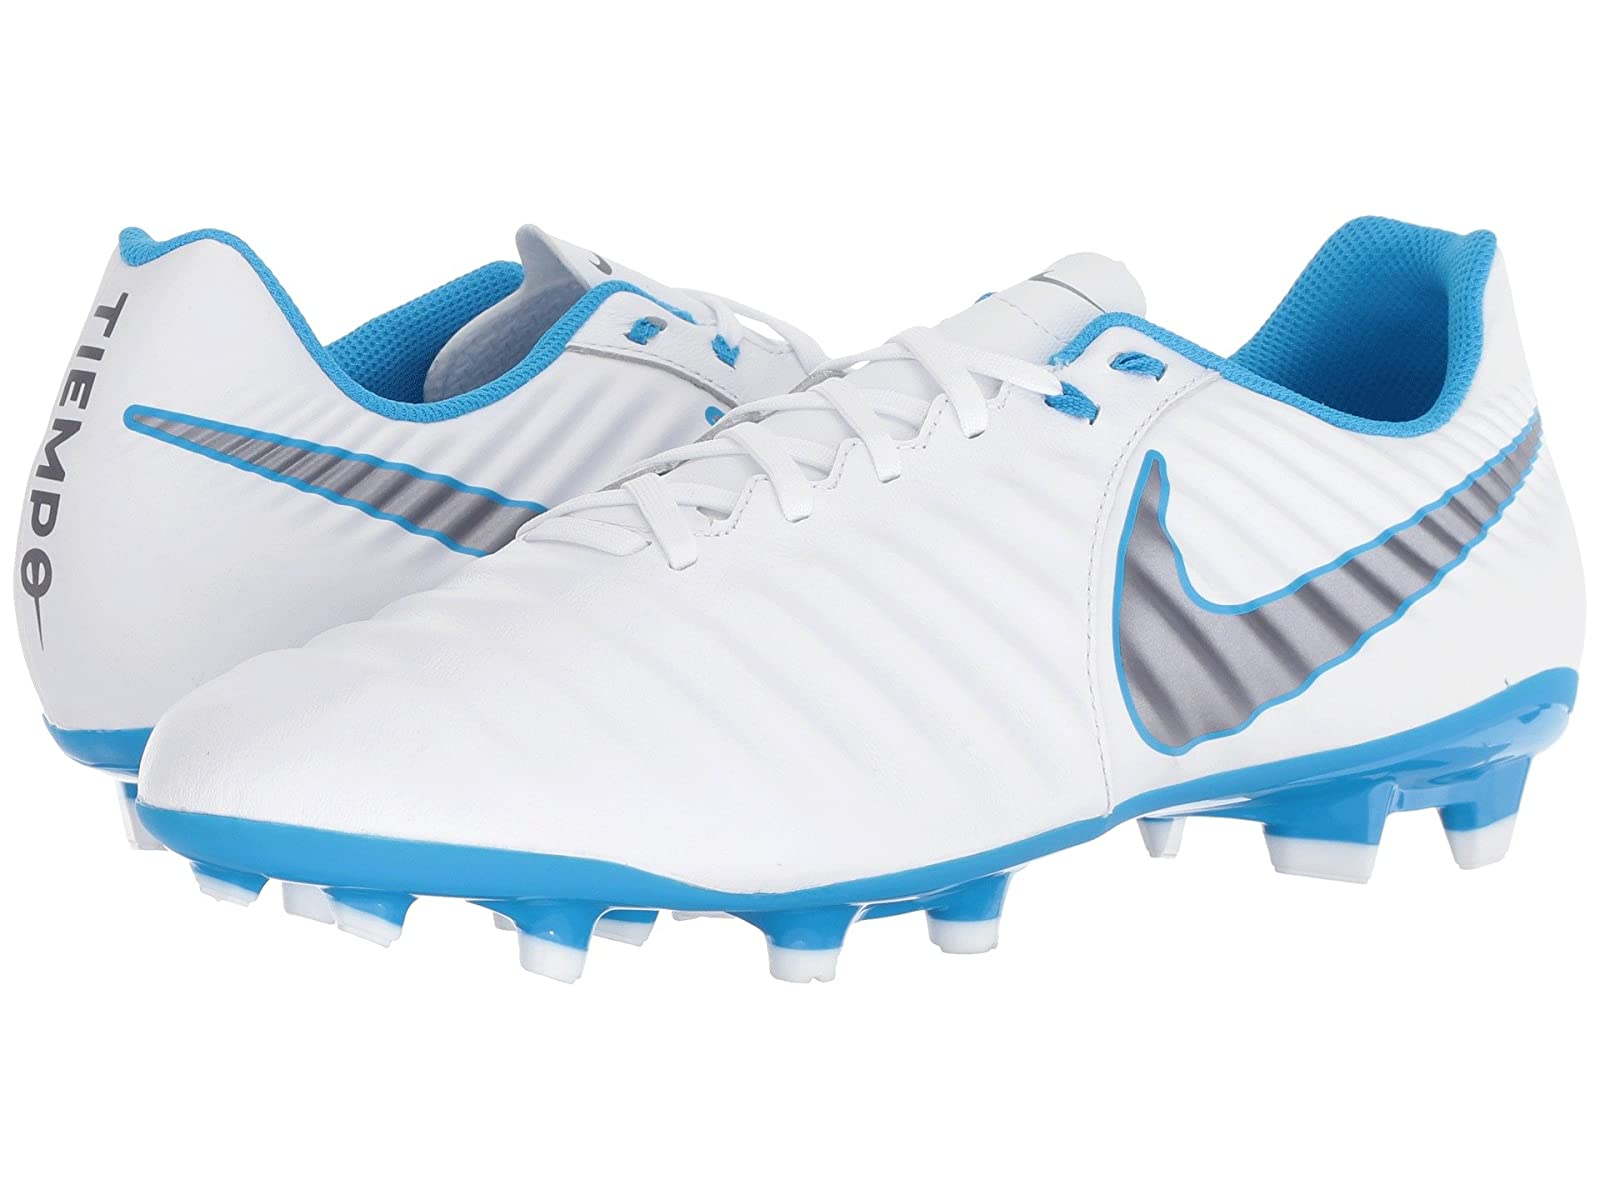 Nike Tiempo Legend 7 Academy FGAtmospheric grades have affordable shoes